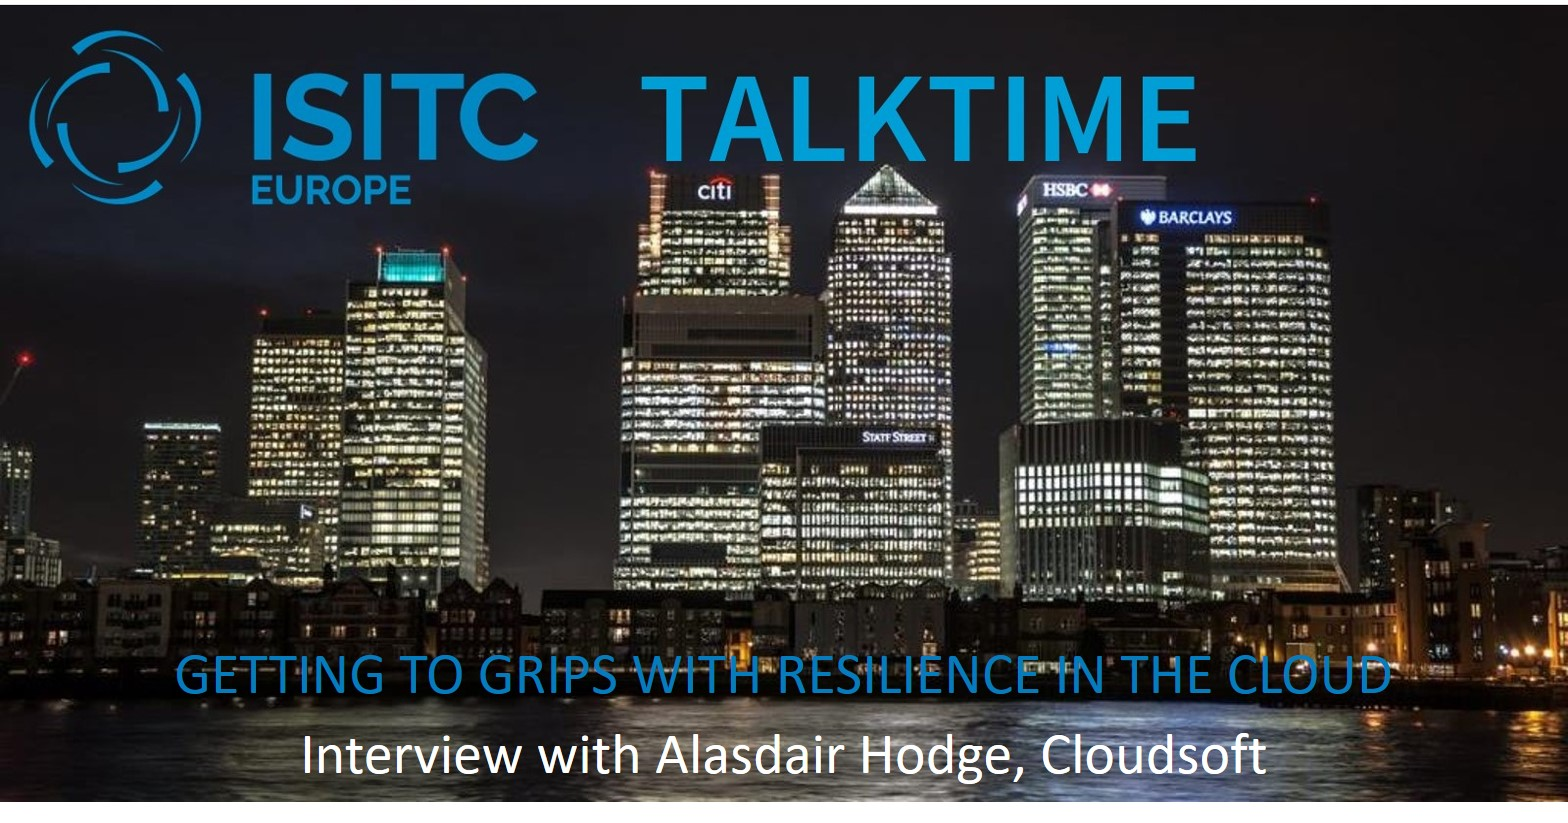 Getting to grips with resilience in the Cloud